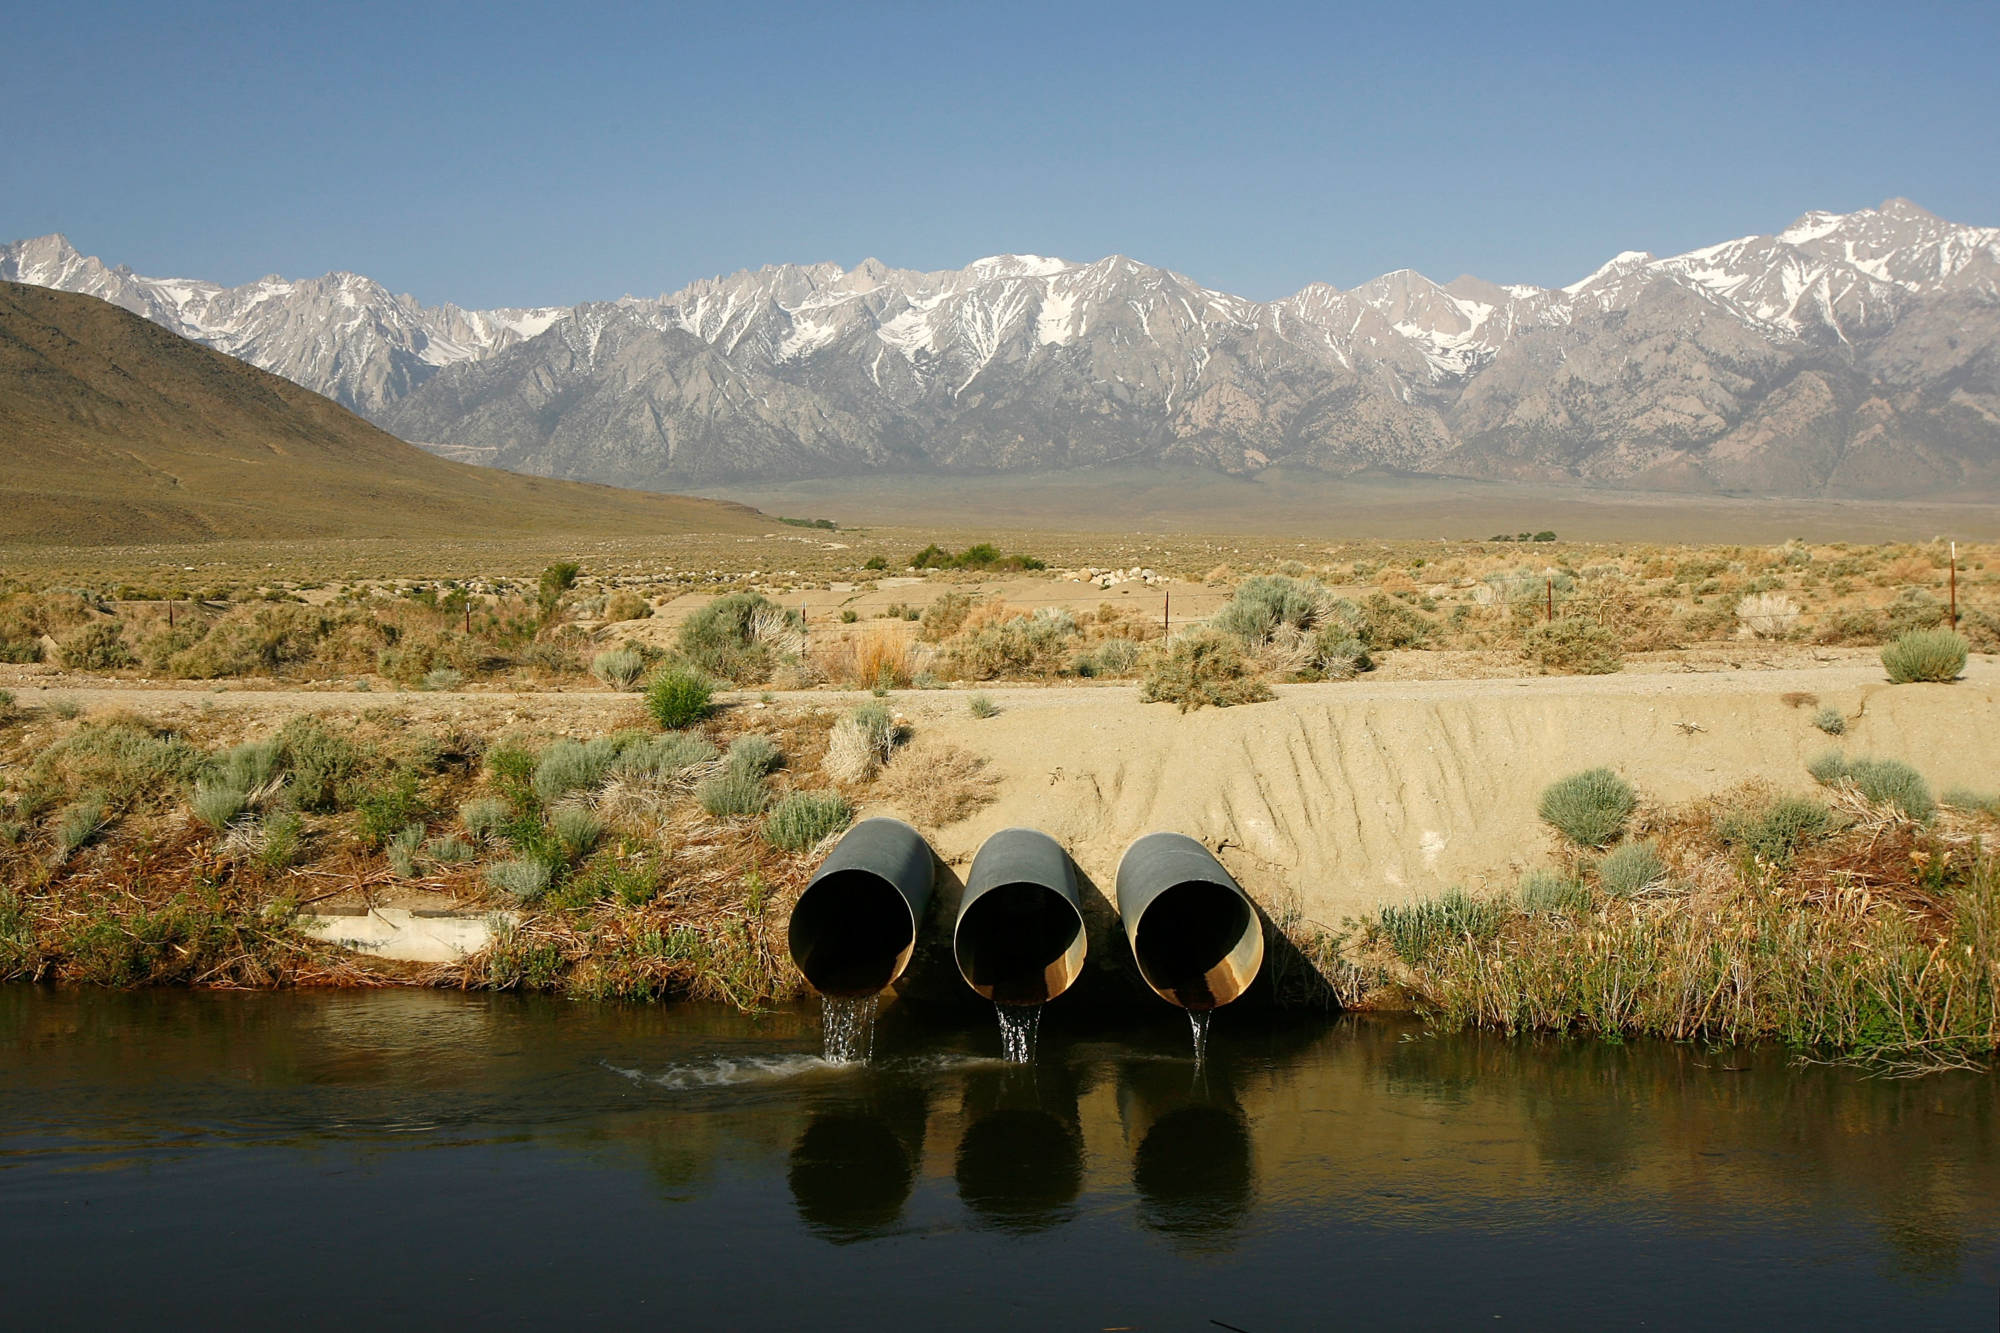 Californians depend on the Sierra snowpack for about a third of their water supply.